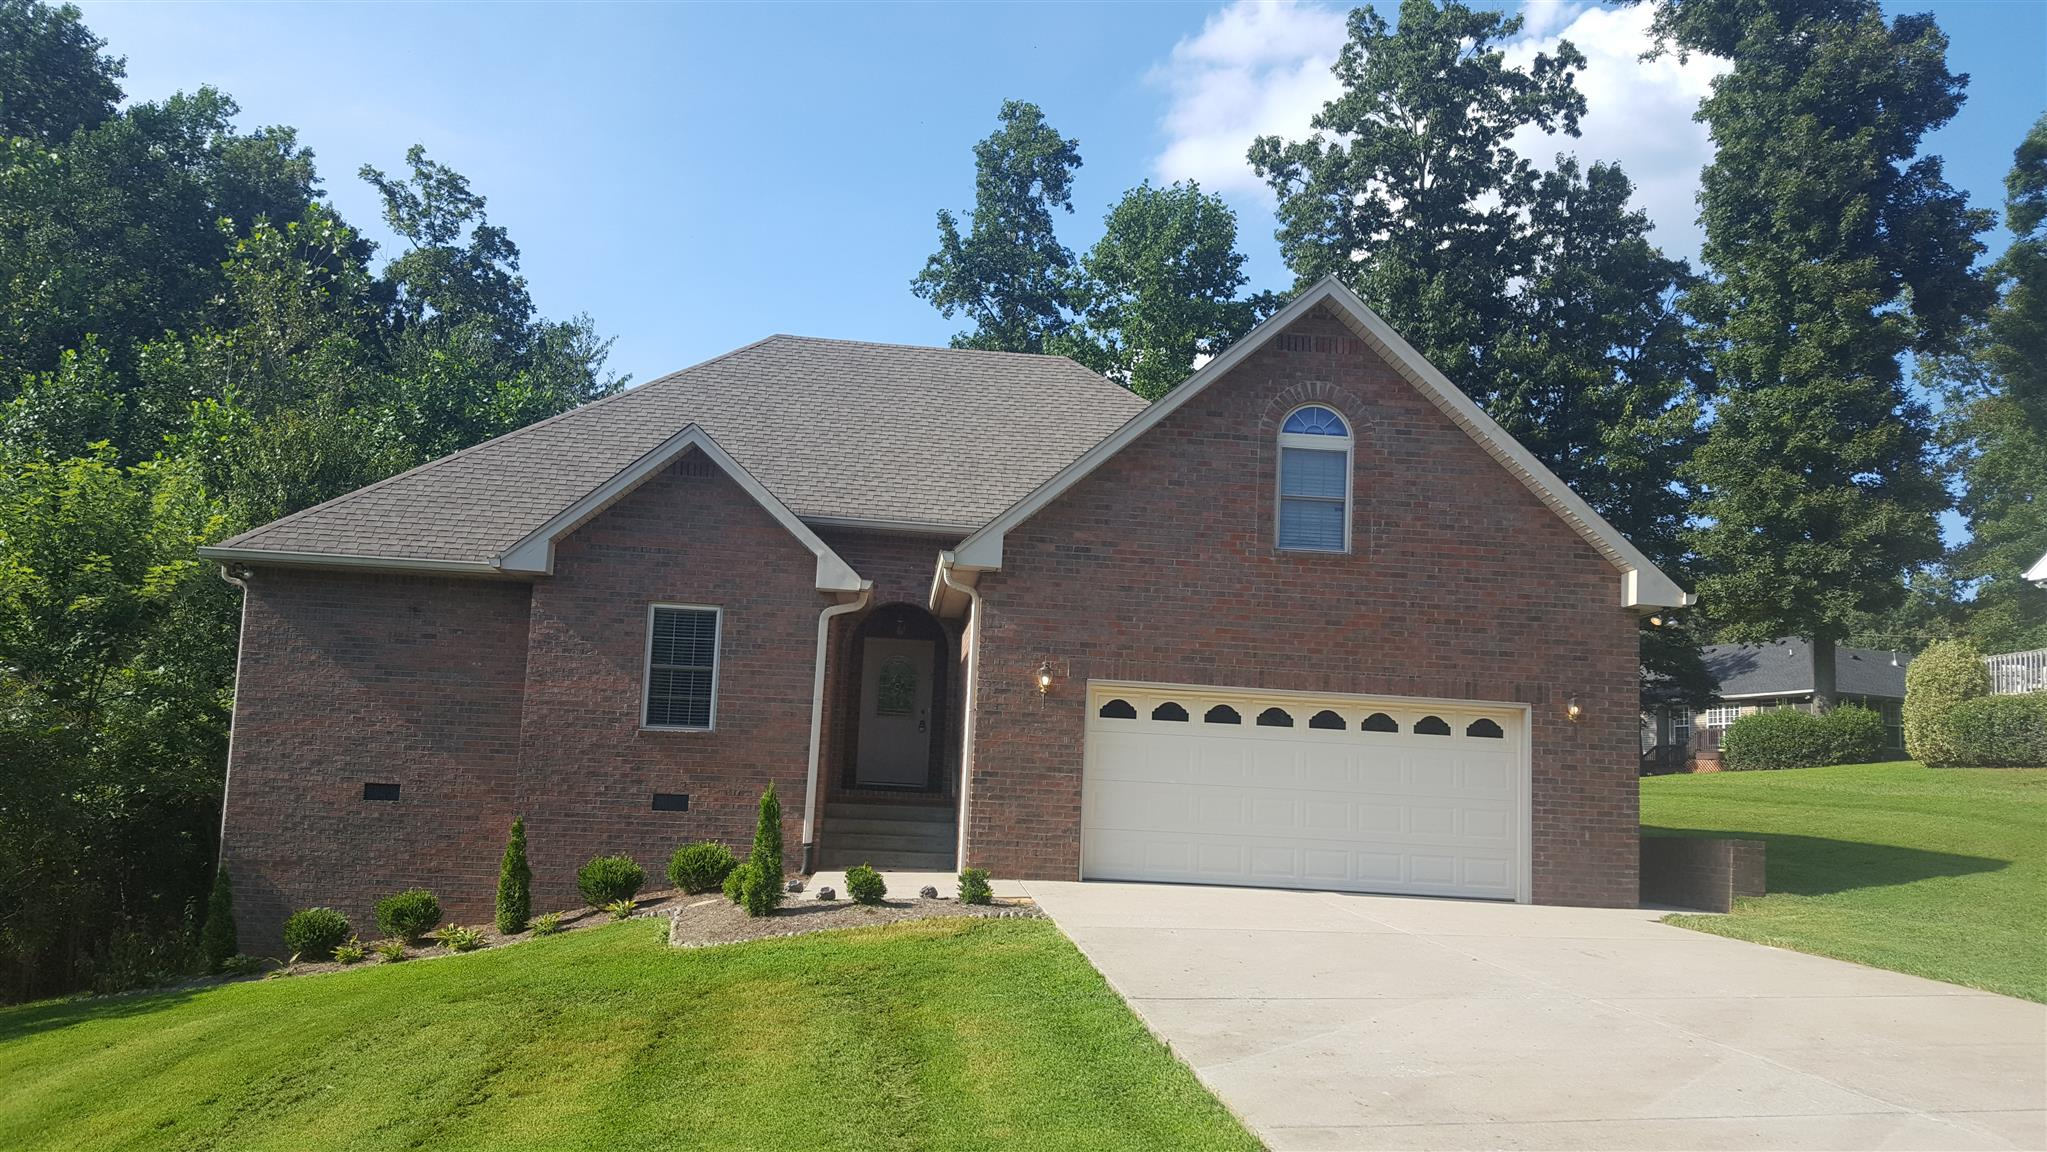 985 Mayes Dr, Greenbrier, TN 37073